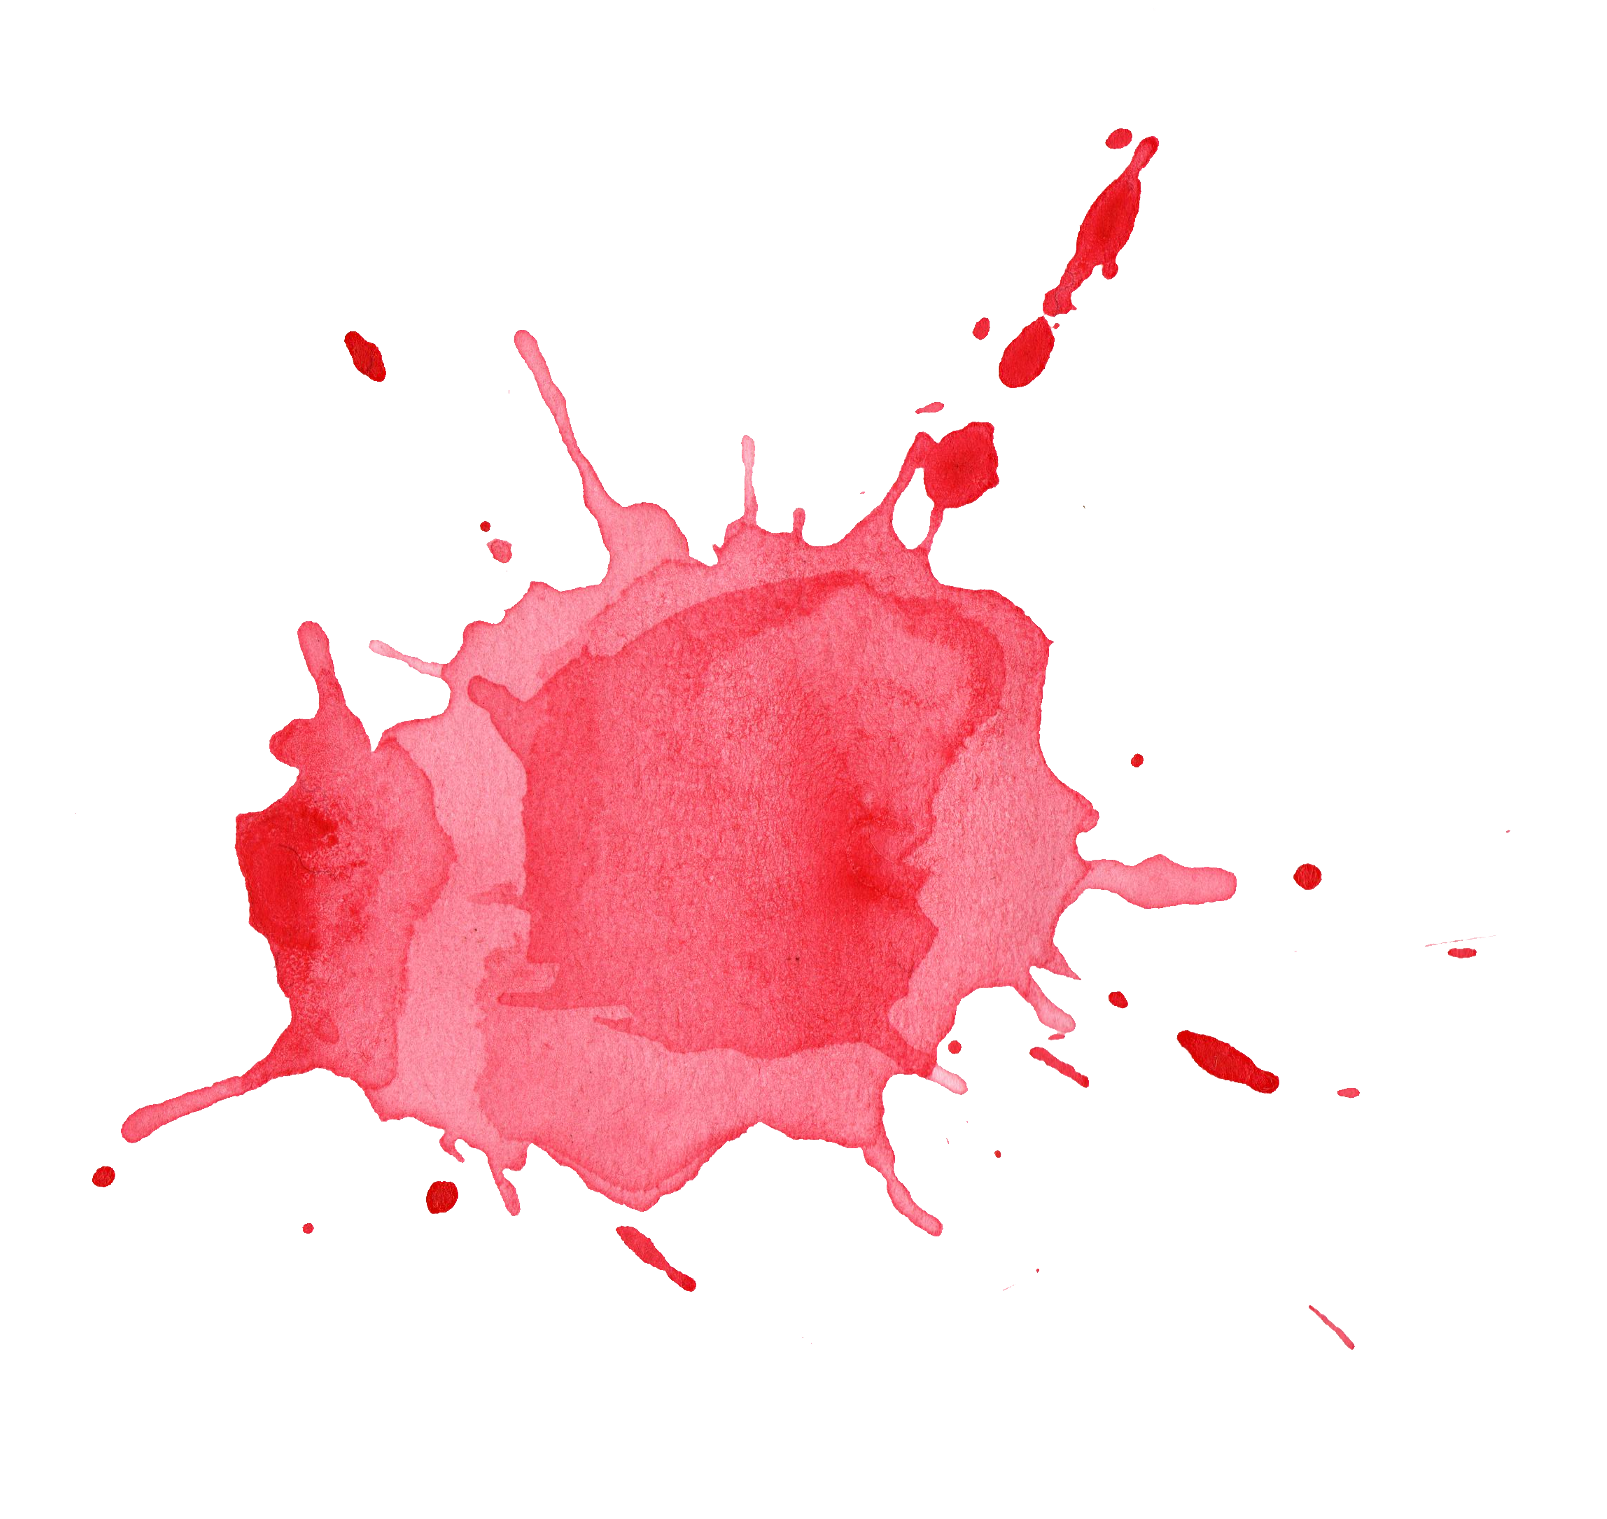 Watercolor stain png. Image result for watercolour